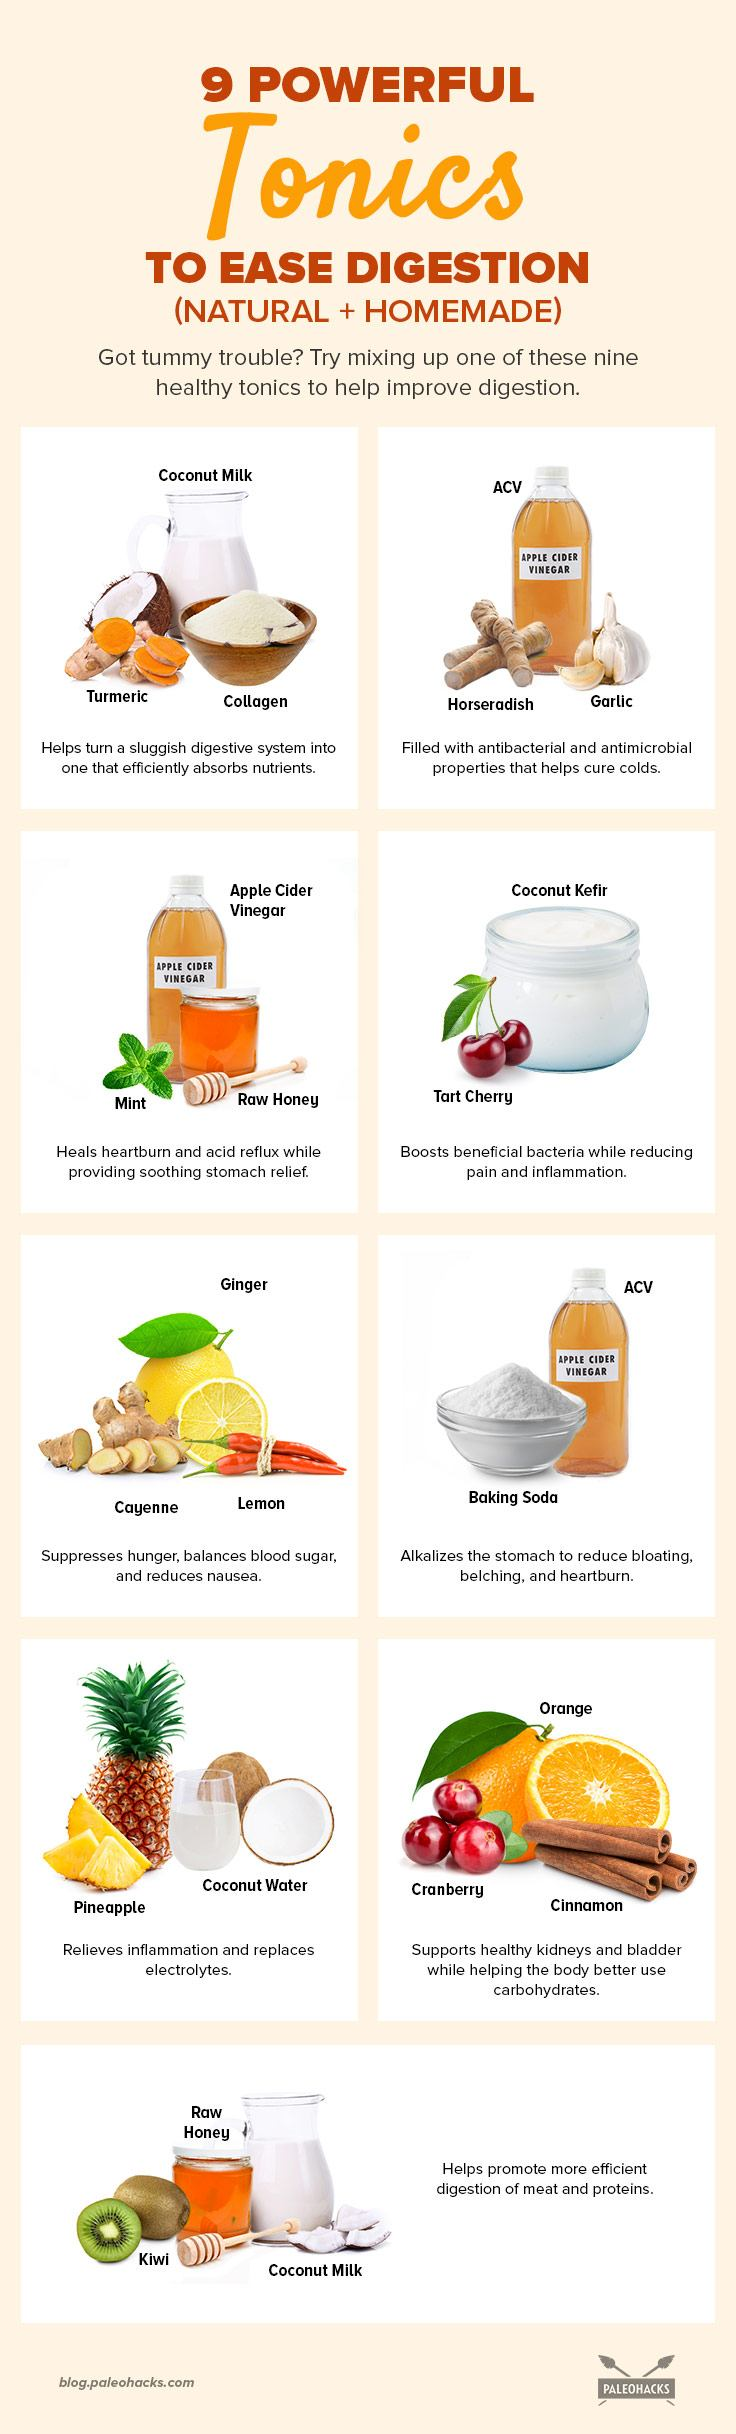 9-Powerful-Tonics-to-Ease-Digestion-infog-.jpg